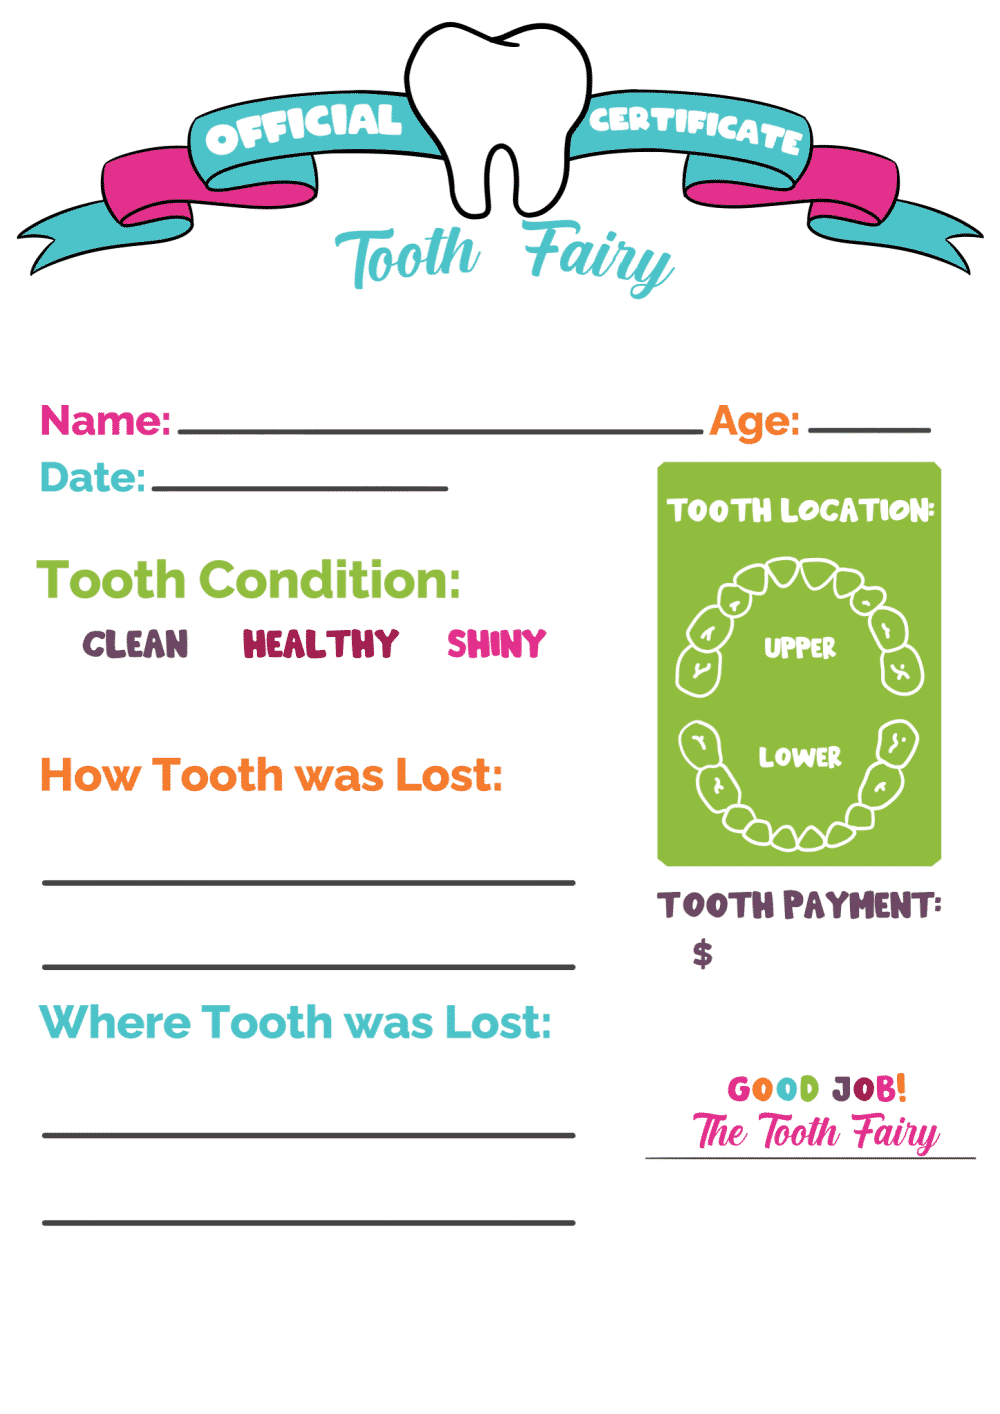 21 Tooth Fairy Certificate Boy and Girl Printables - Freebie Throughout Free Tooth Fairy Certificate Template